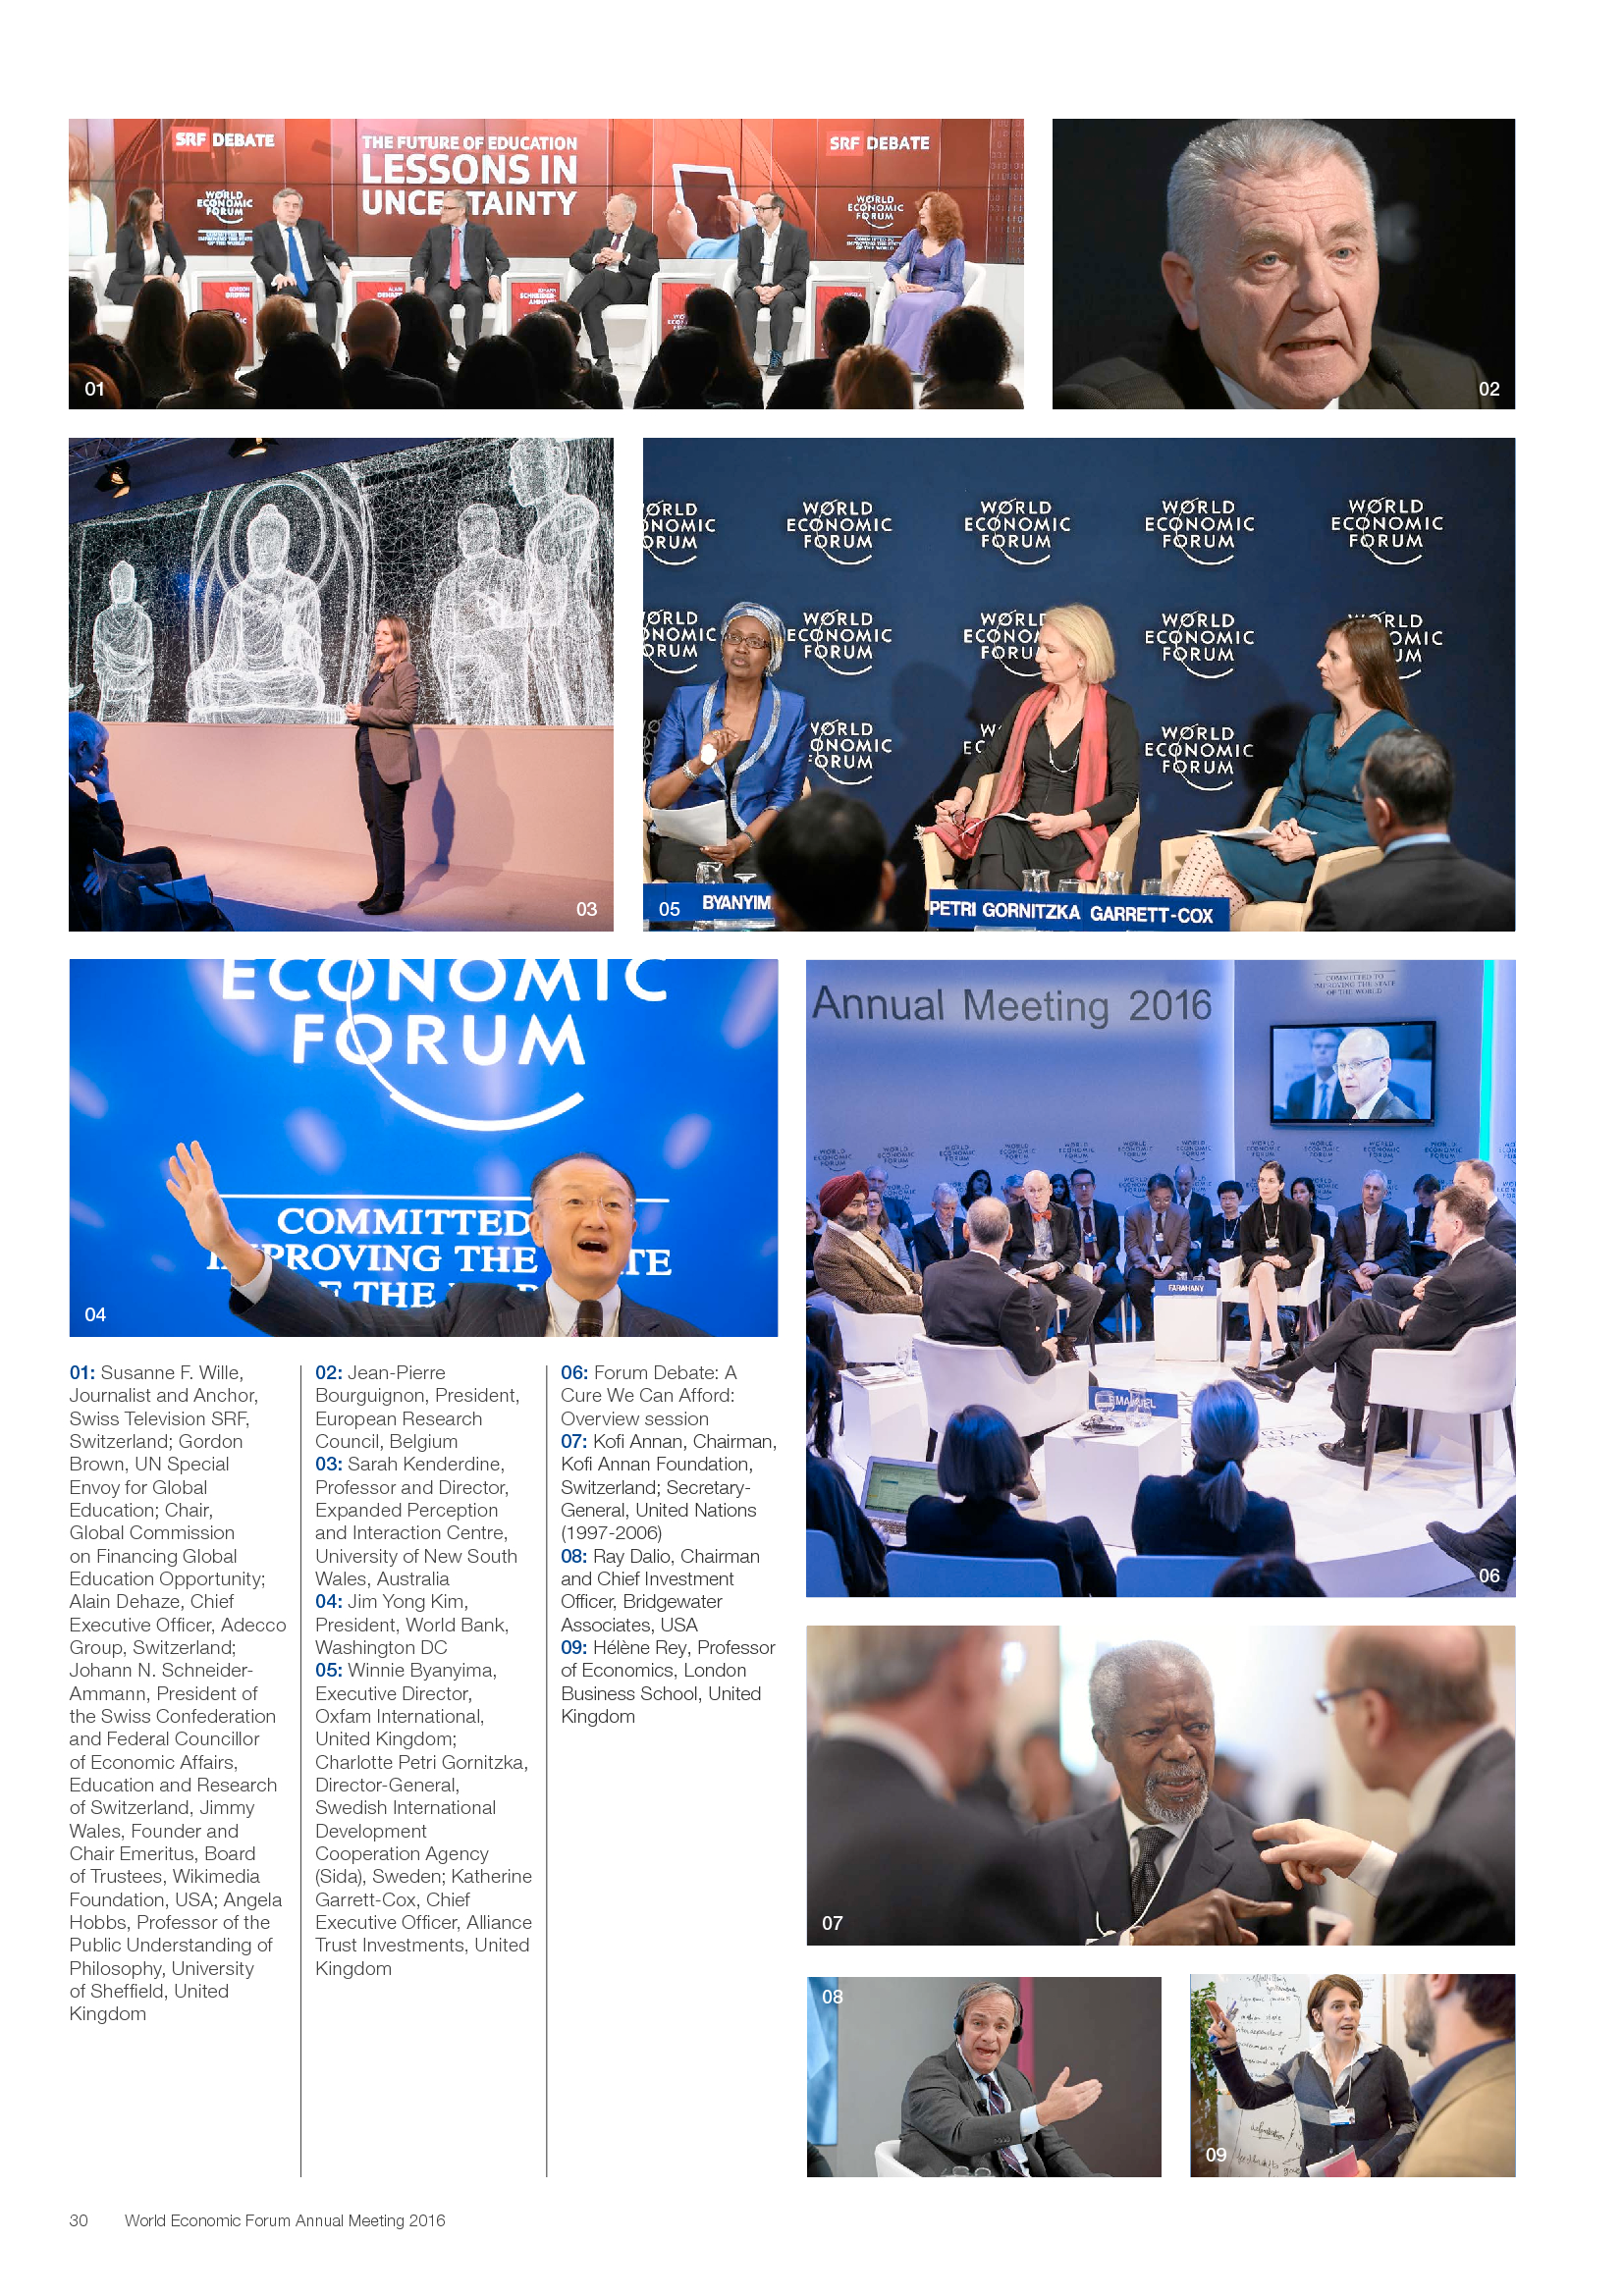 Advisorselect - World Economic Forum Annual Meeting 2016: Mastering